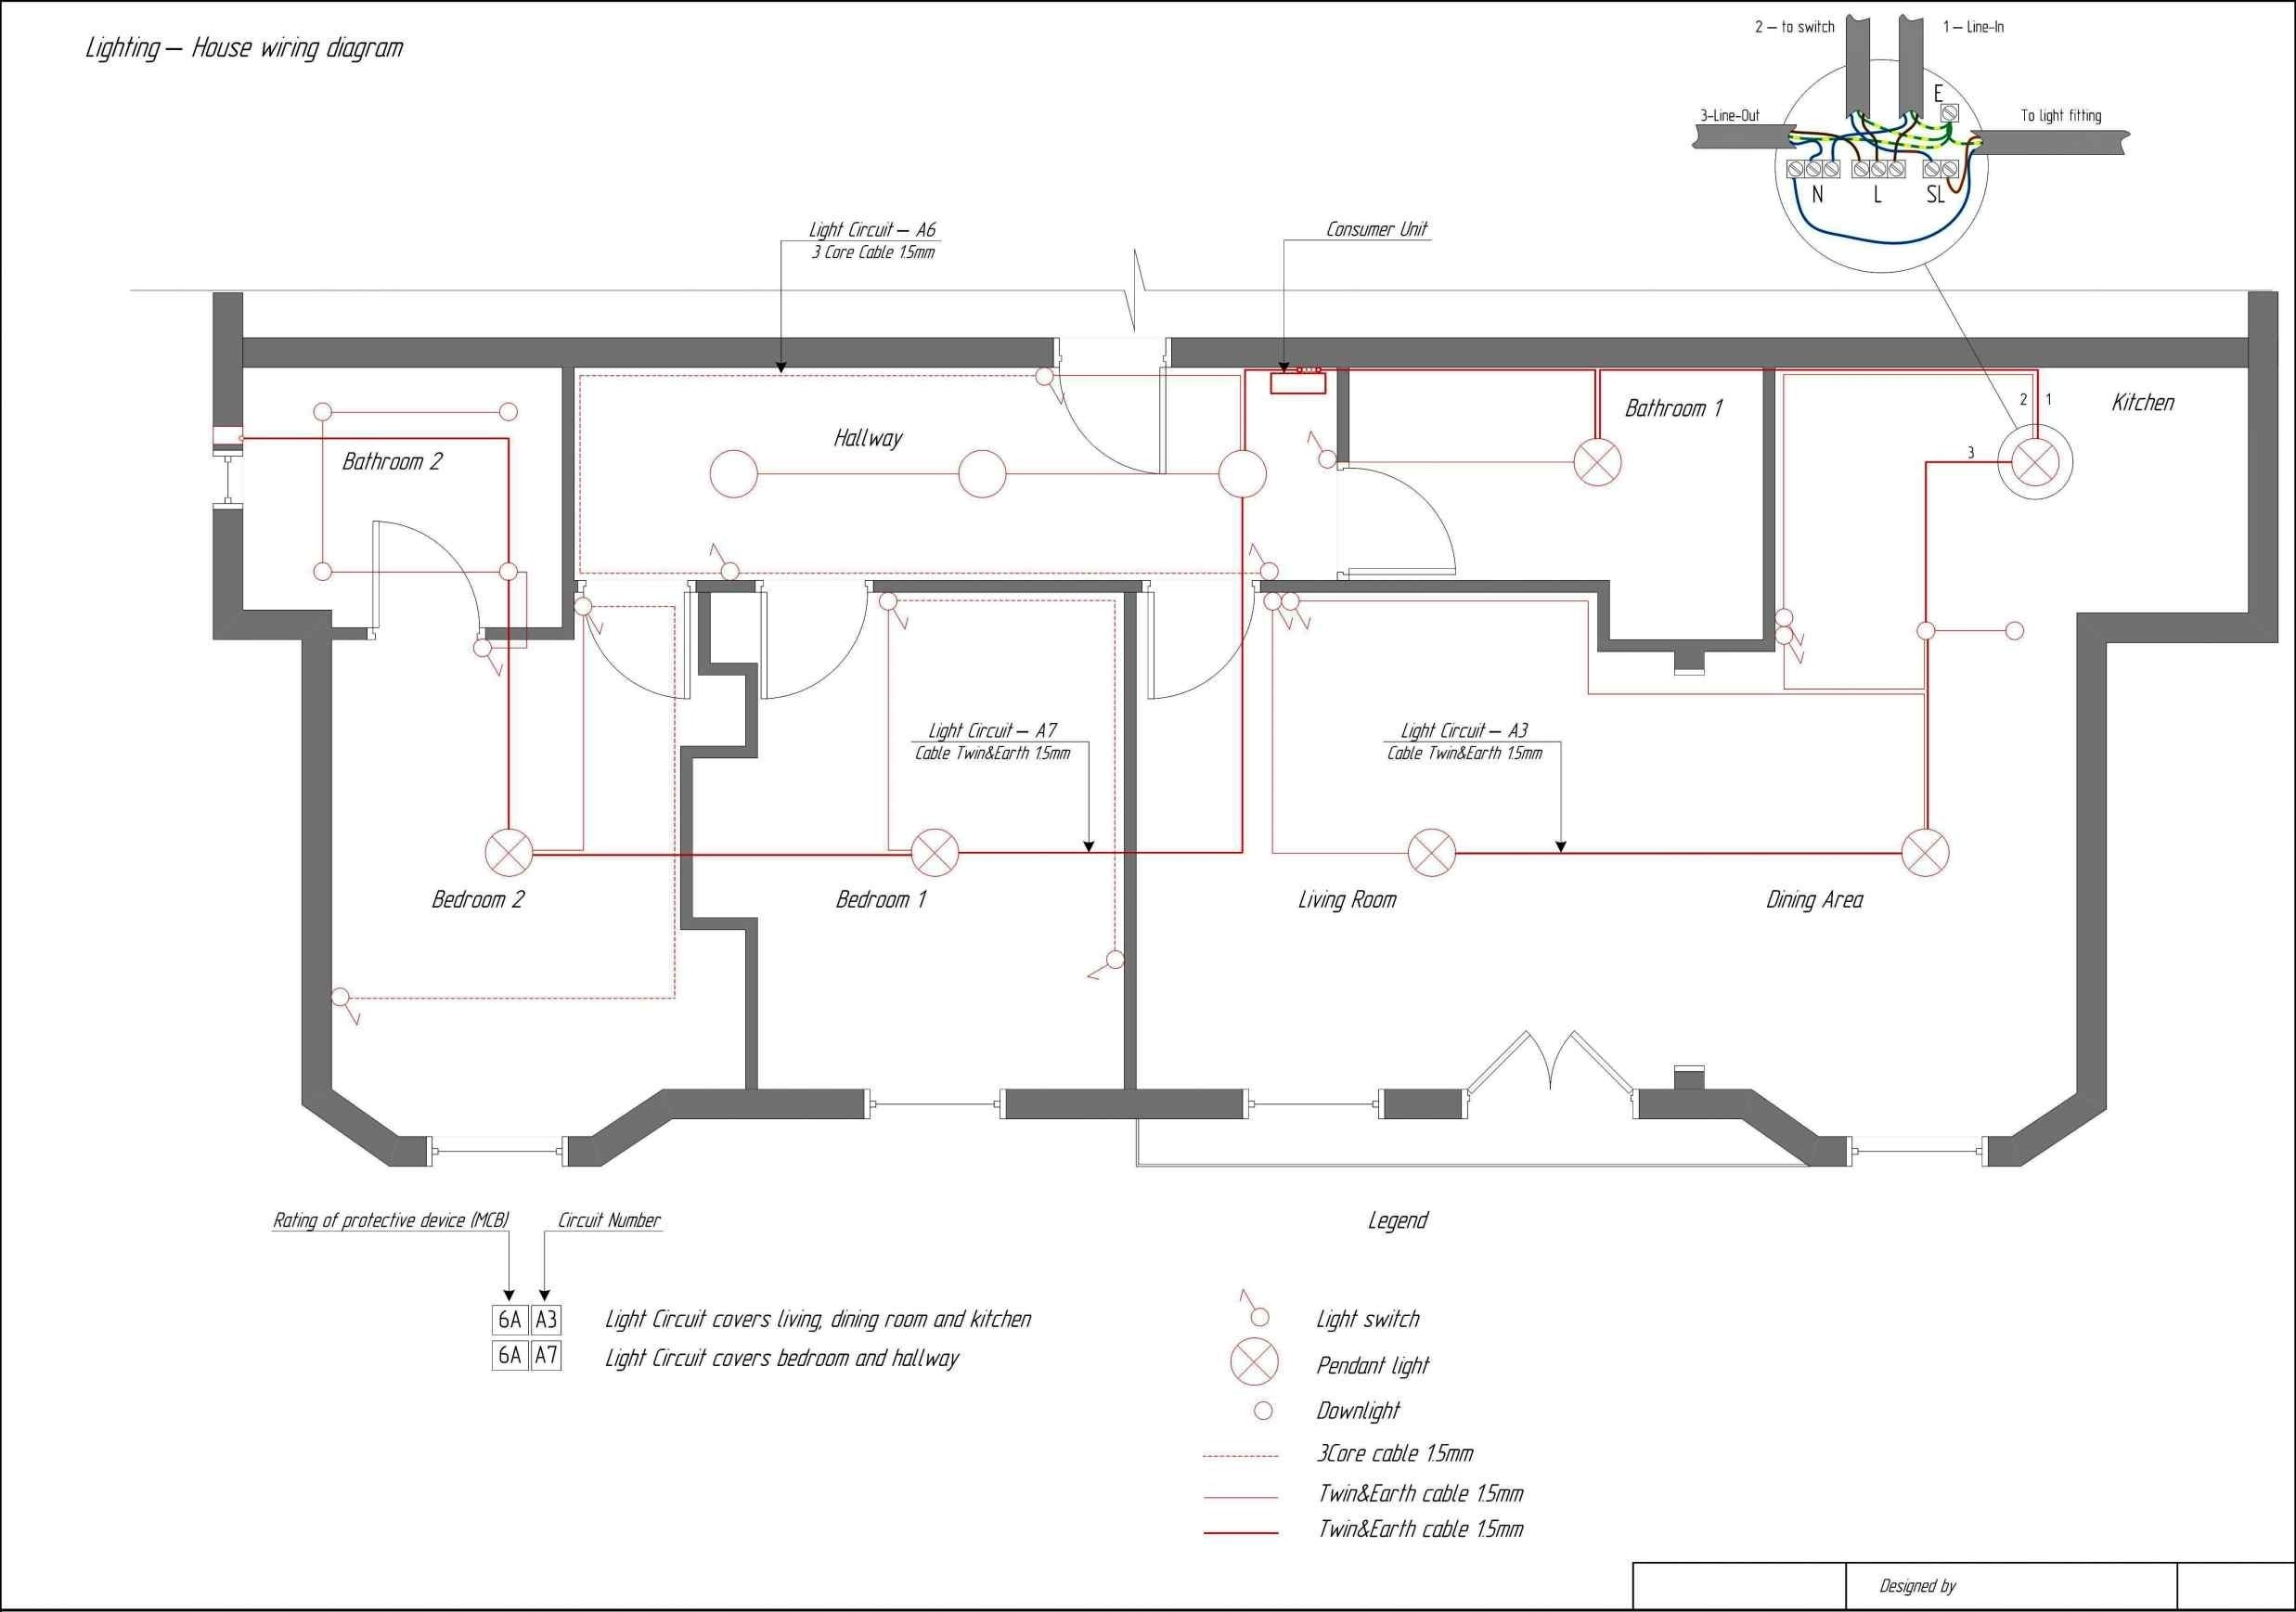 Terrific Residential Electrical Schematic Wiring Diagram Circuit Better Wiring Cloud Faunaidewilluminateatxorg